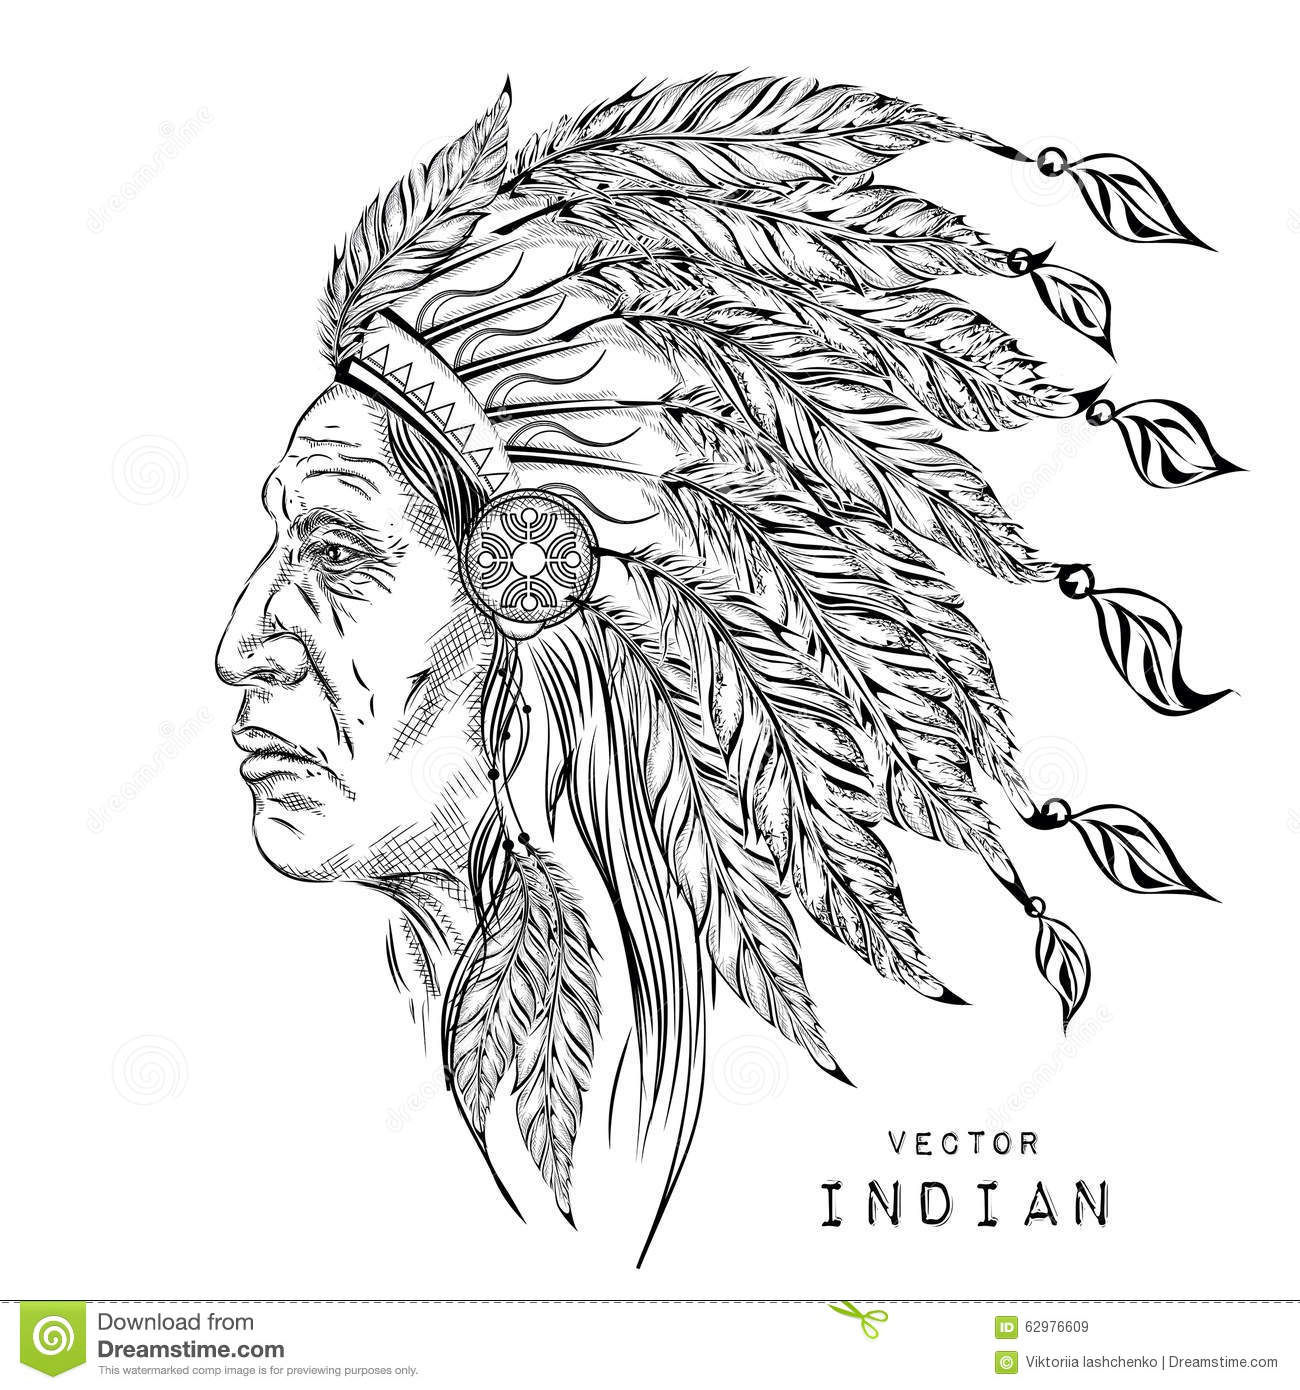 Man In The Native American Indian Chief Black Roach